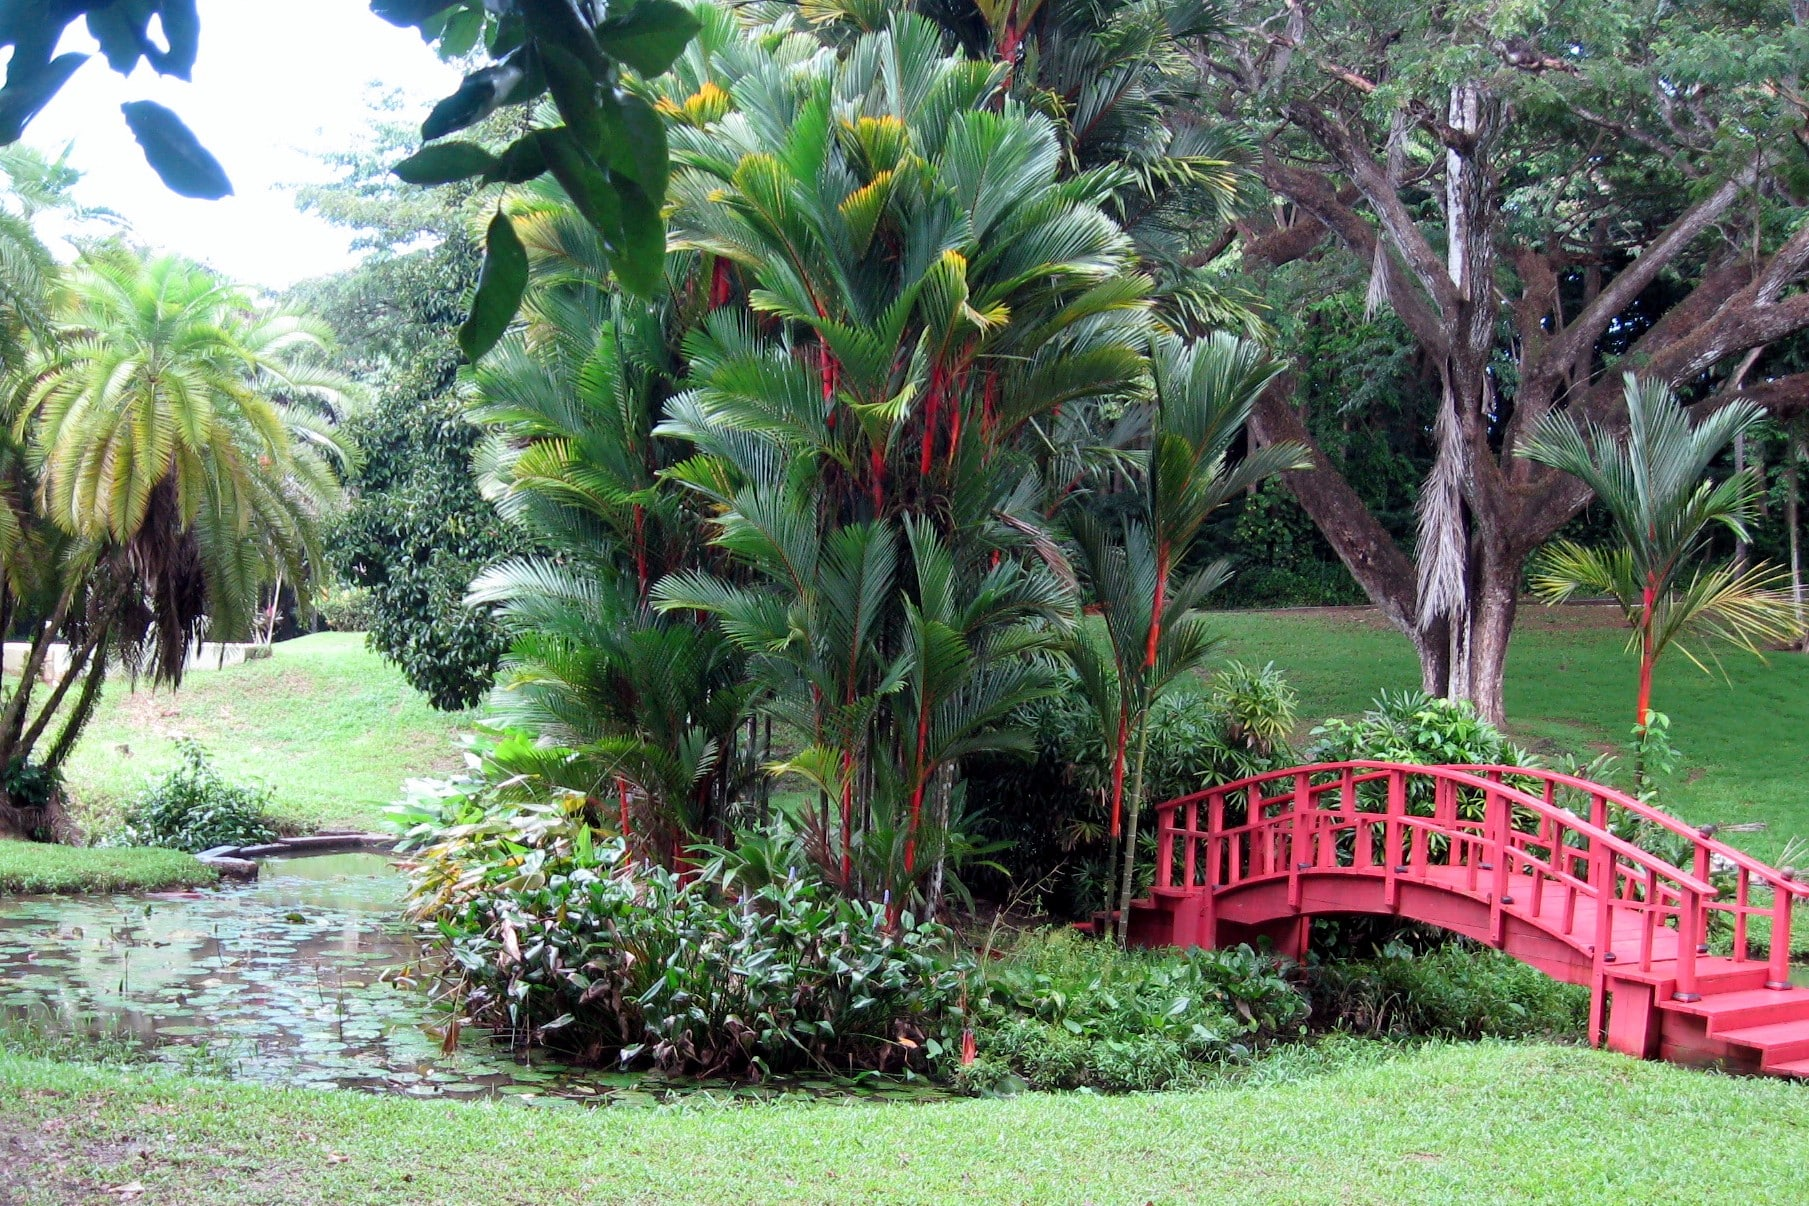 The Rio Piedras Botanical Garden is one of the places to go in Puerto Rico